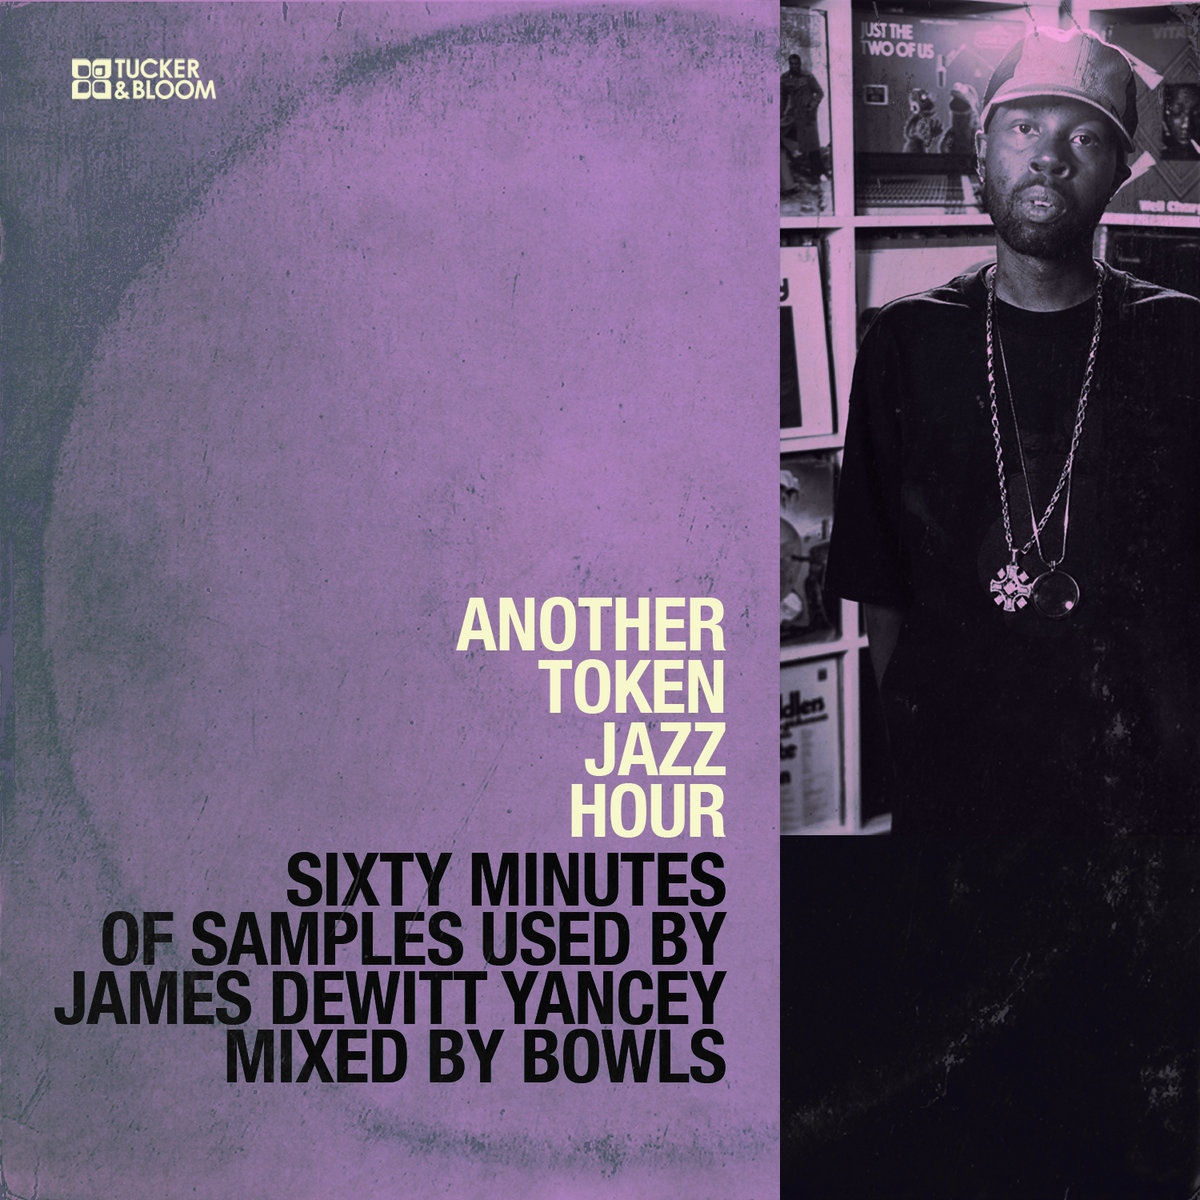 Another Token Jazz Hour: 60 Minutes of Samples Used by J Dilla (Mixed by Bowls)